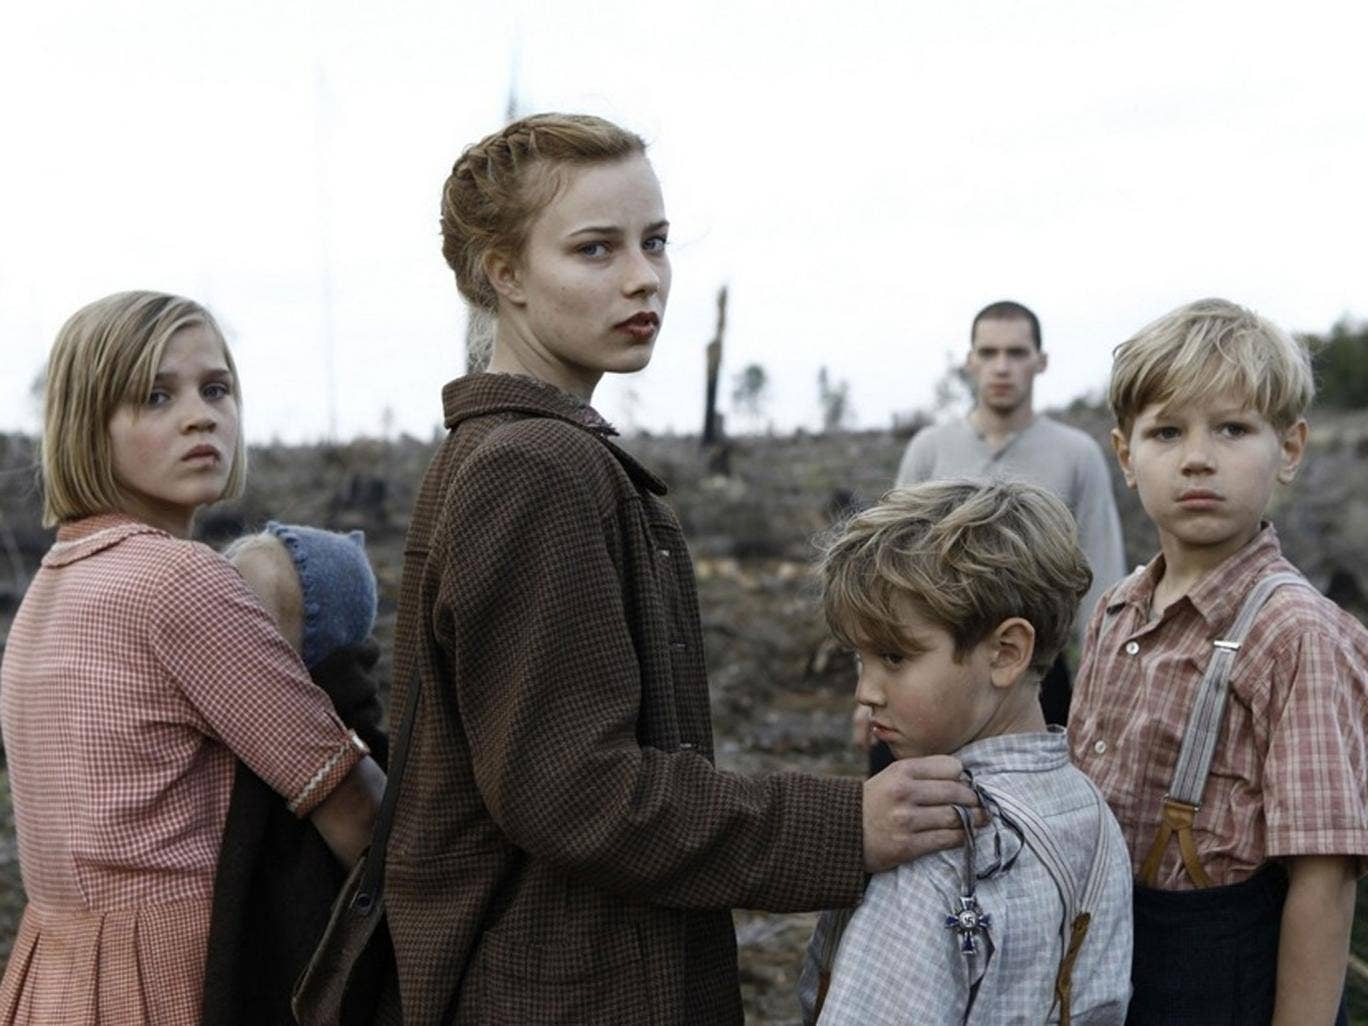 Children of war: Nele Trebs, Saskia Rosendahl, Mika Seidel and André Frid in the outstanding 'Lore'